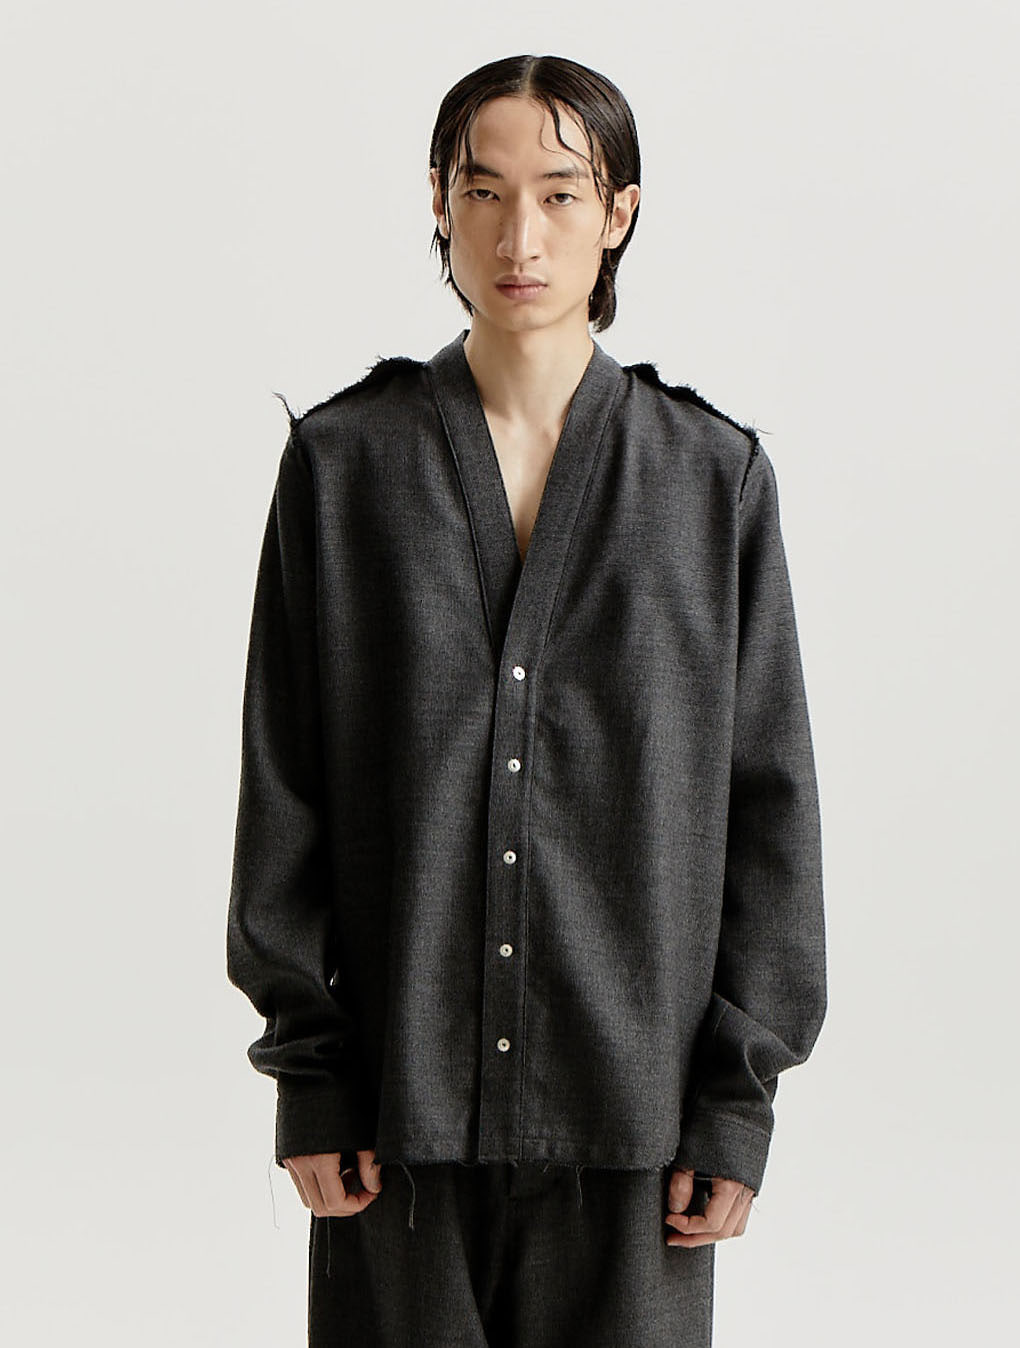 Dark Grey Wool Woven Distressed Edge Cardigan